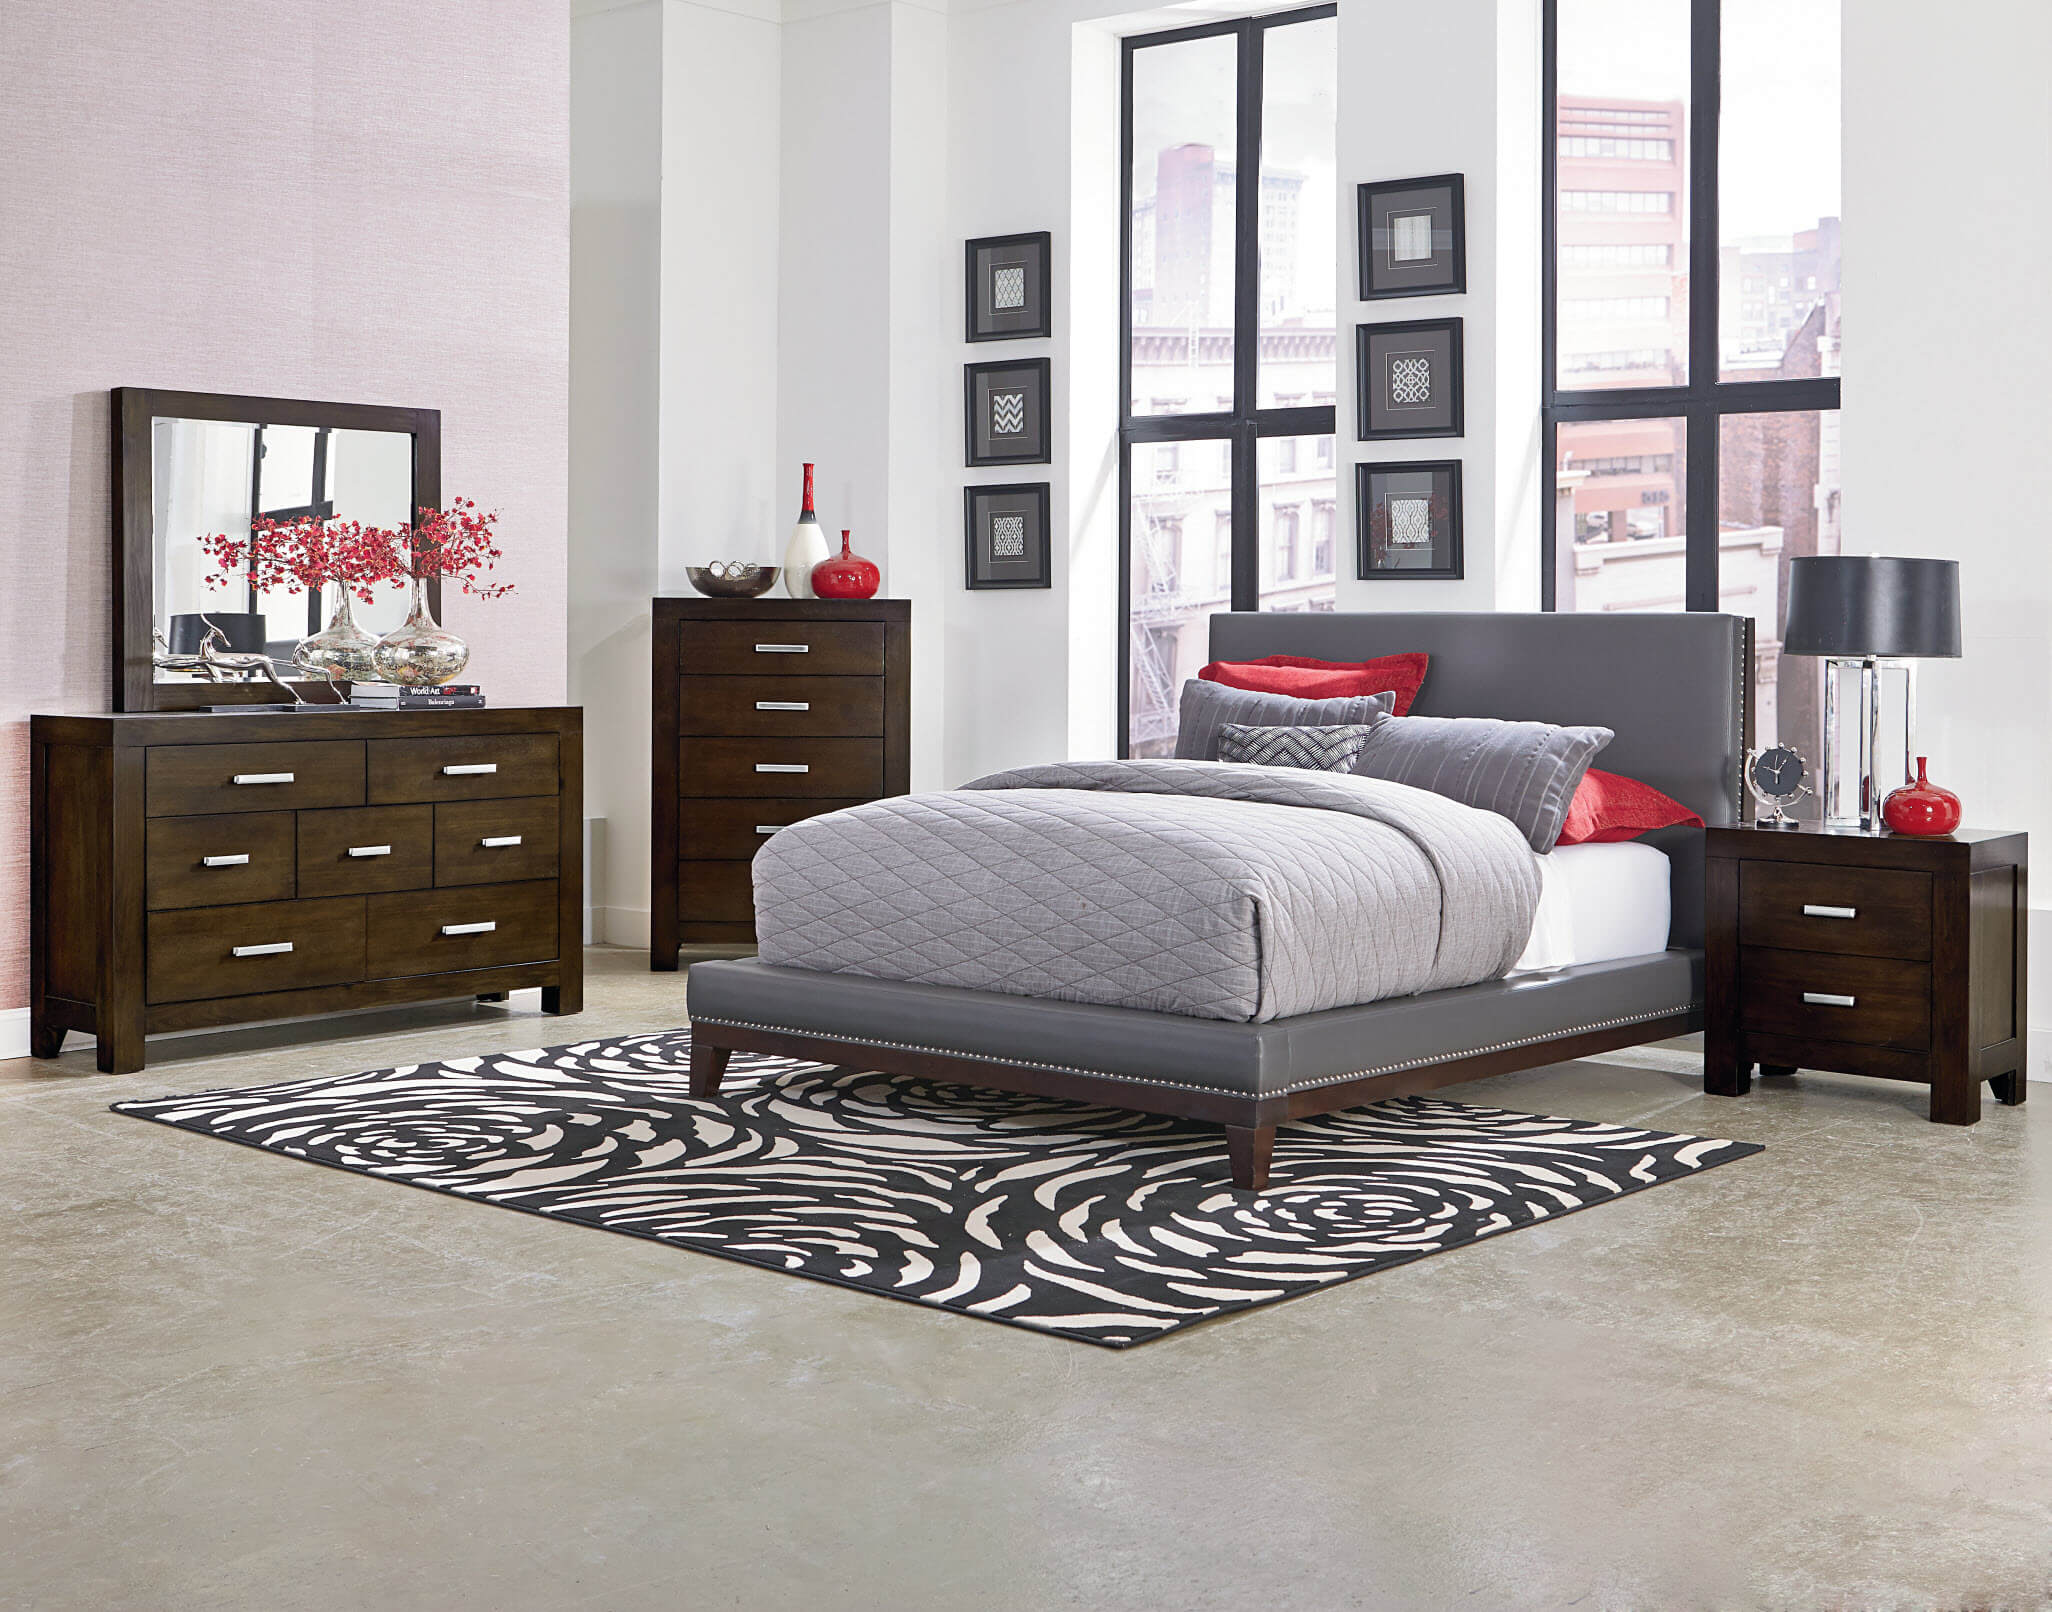 American Freight Bedroom Set. Bedroom Furniture Sets Couture Platform Set